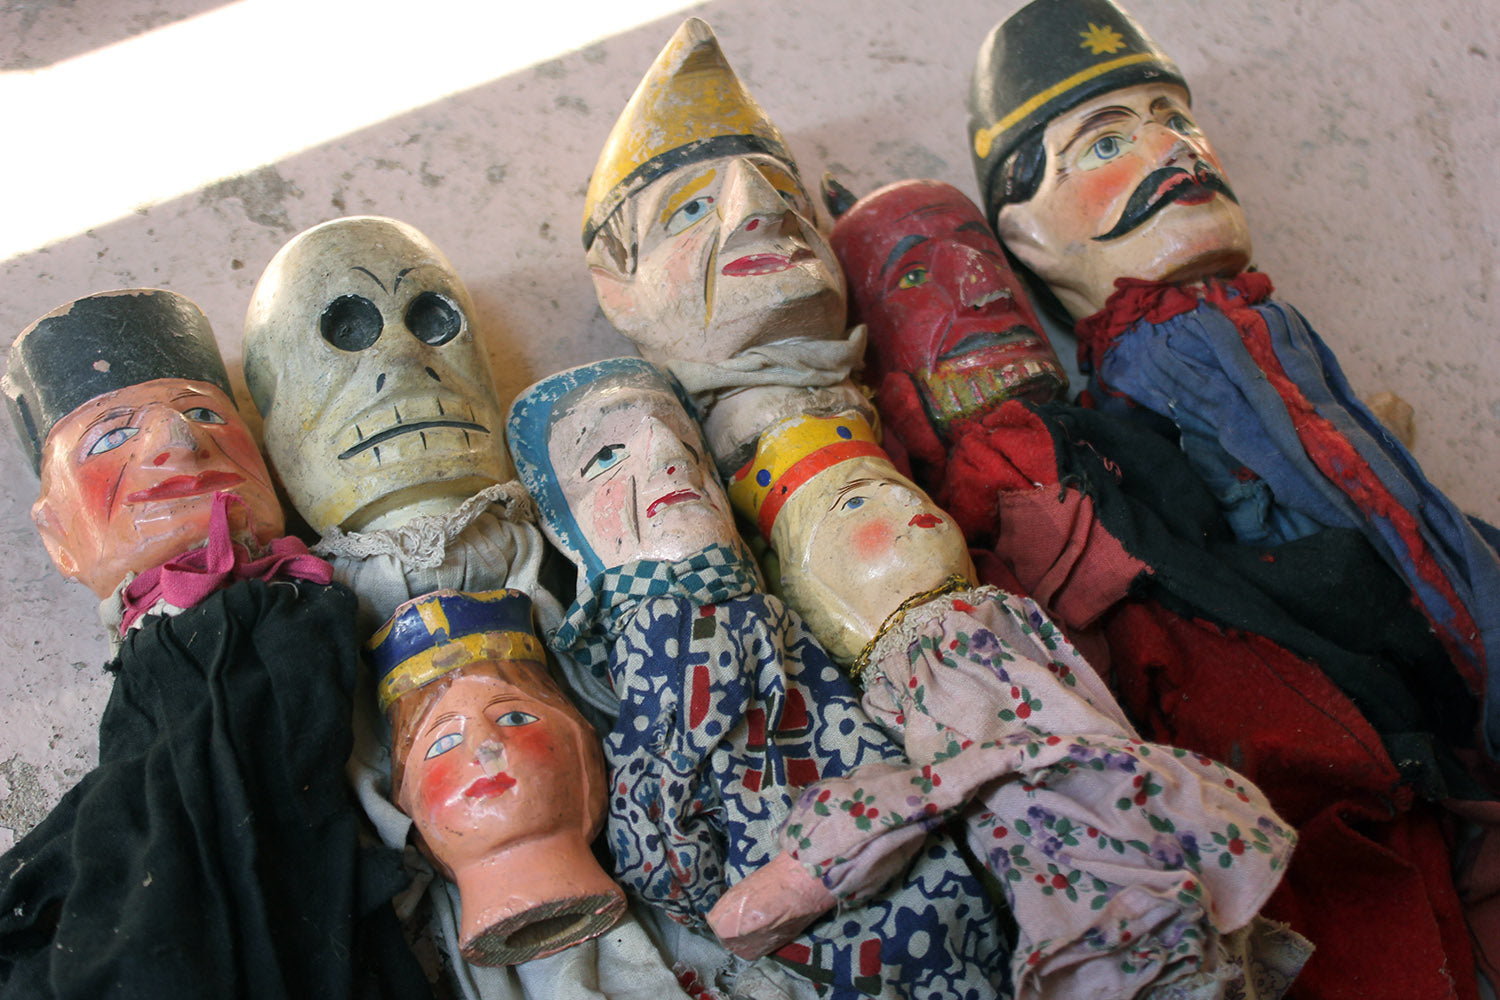 A Group of Seven Late 19thC English Folk Art Punch & Judy Finger Puppets